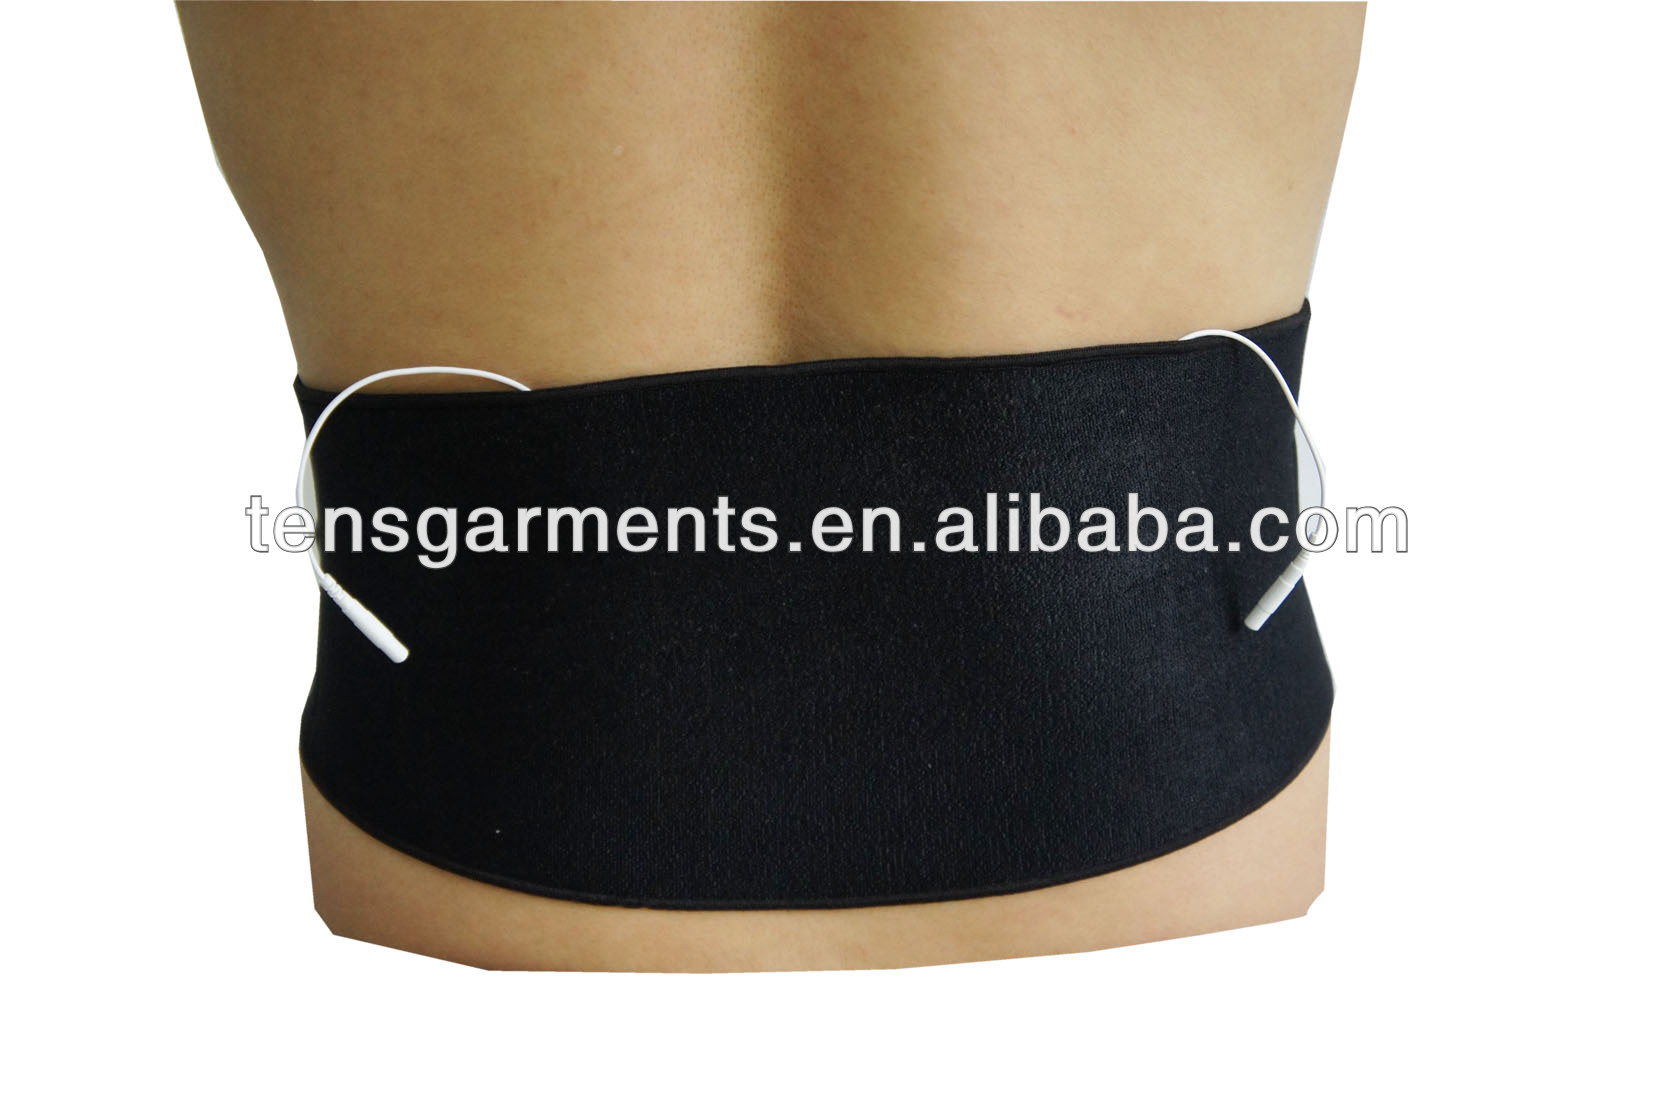 body care electric massage pro slimming belt